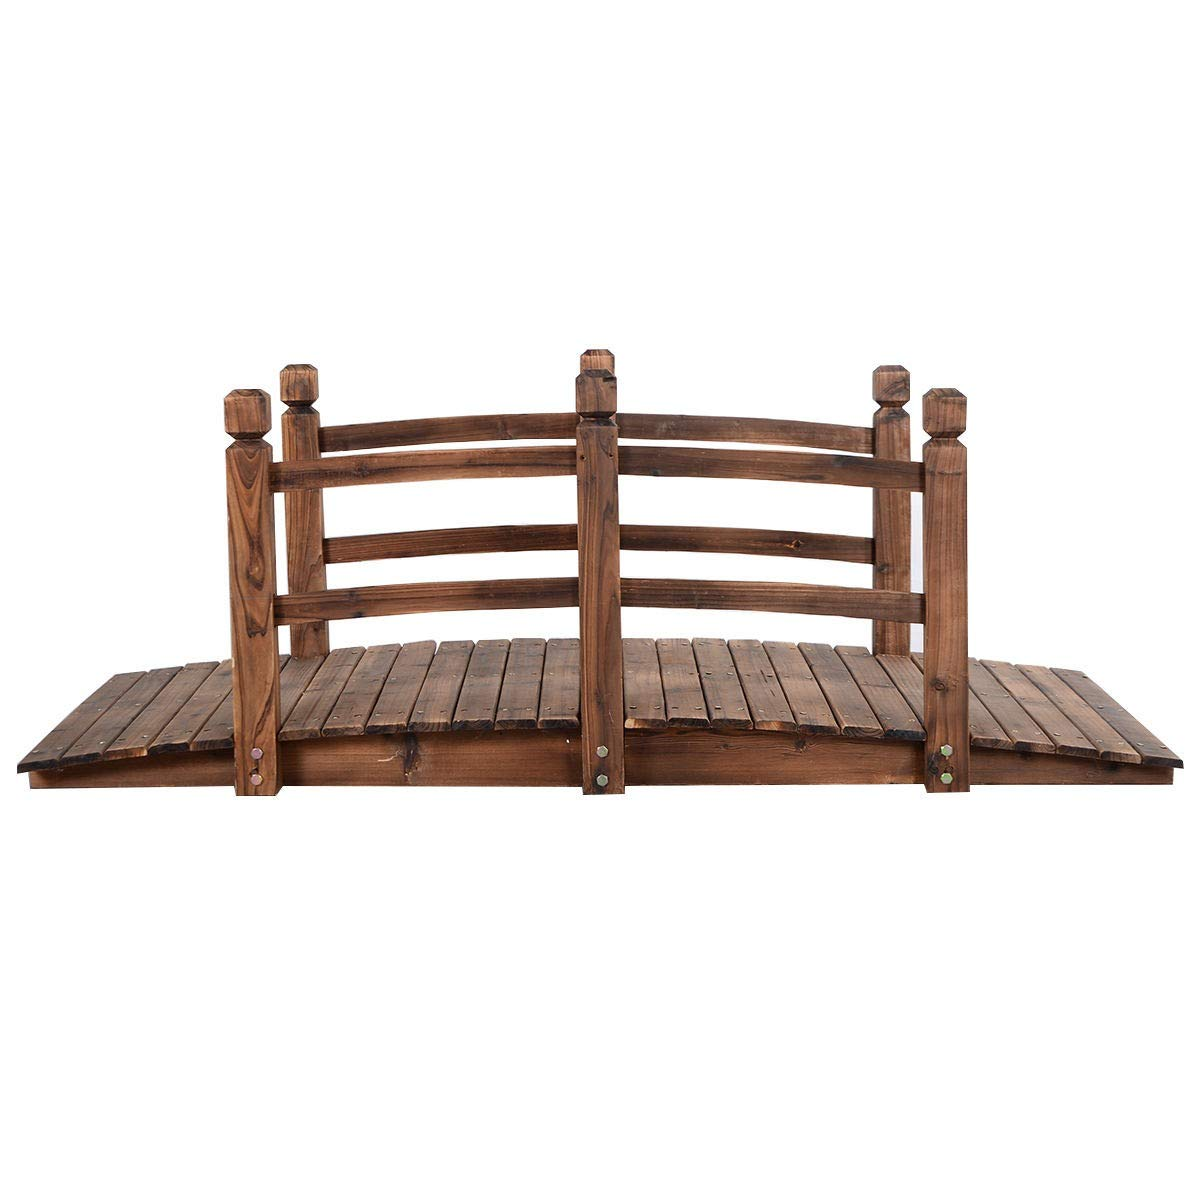 LHONE 5' Garden Bridge Wooden Stained Finish Decorative Solid Wood Garden Pond Arch Walkway Backyard Bridge with Railings by LHONE (Image #1)